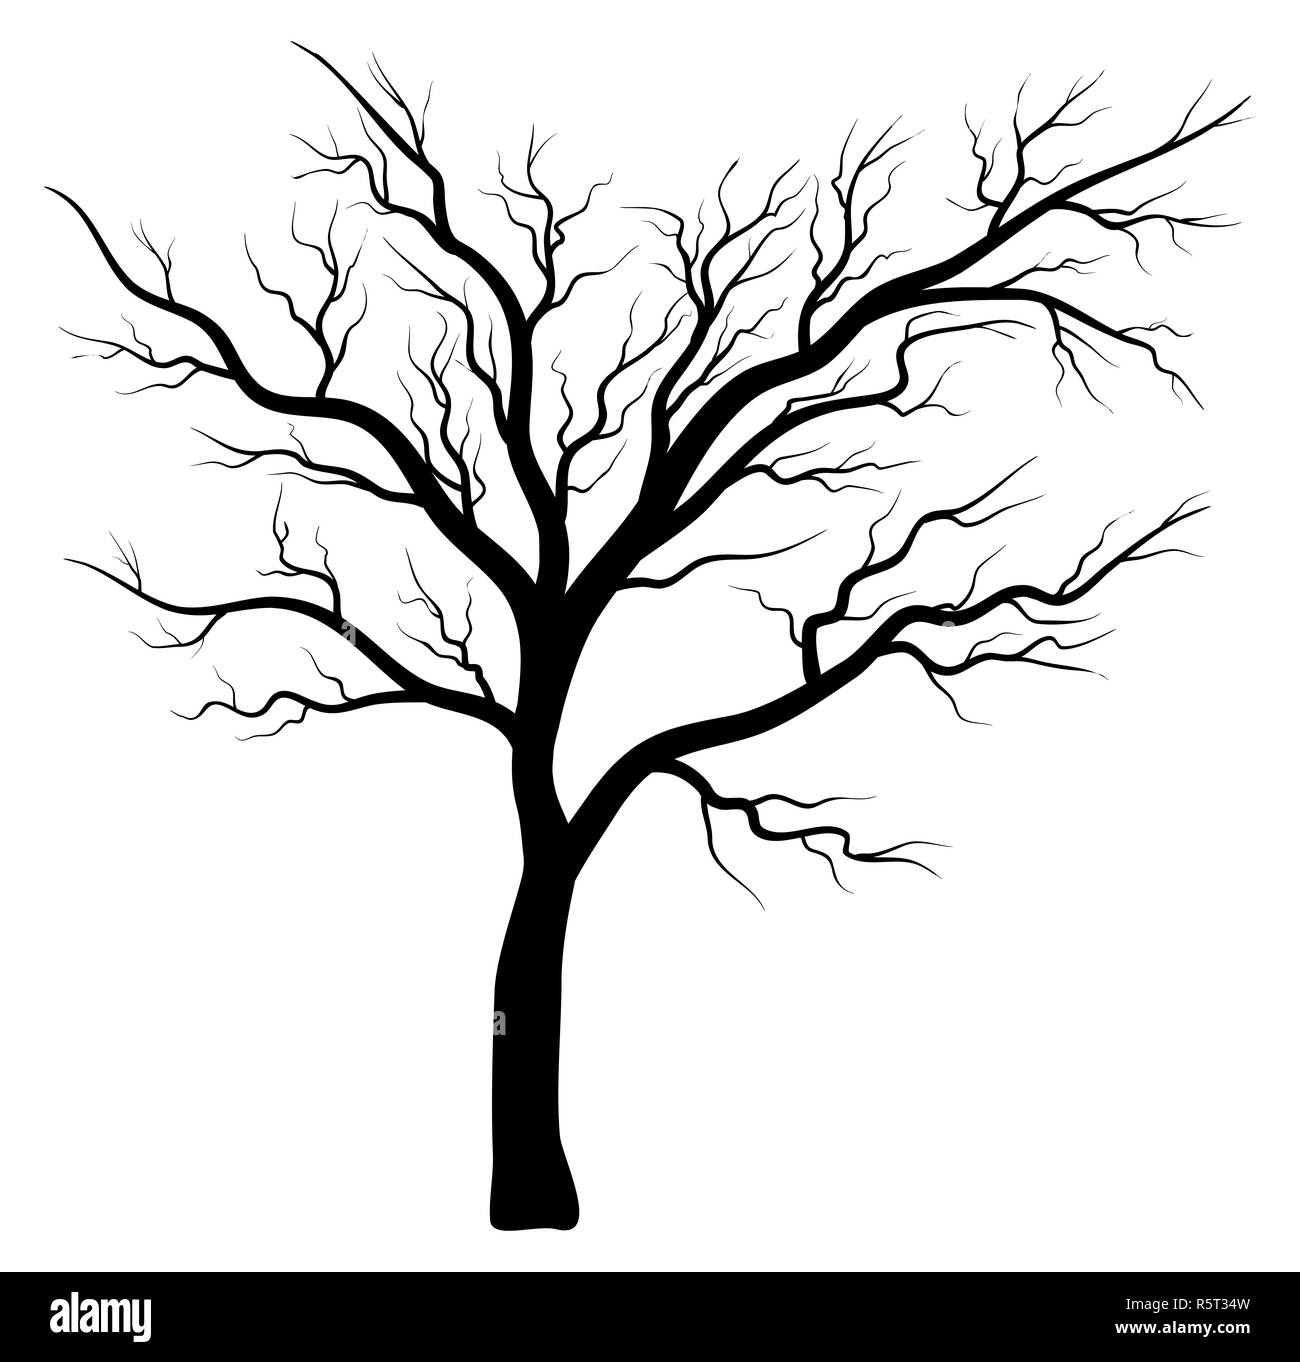 Bare Tree Clipart Stock Photos Bare Tree Clipart Stock Images Alamy